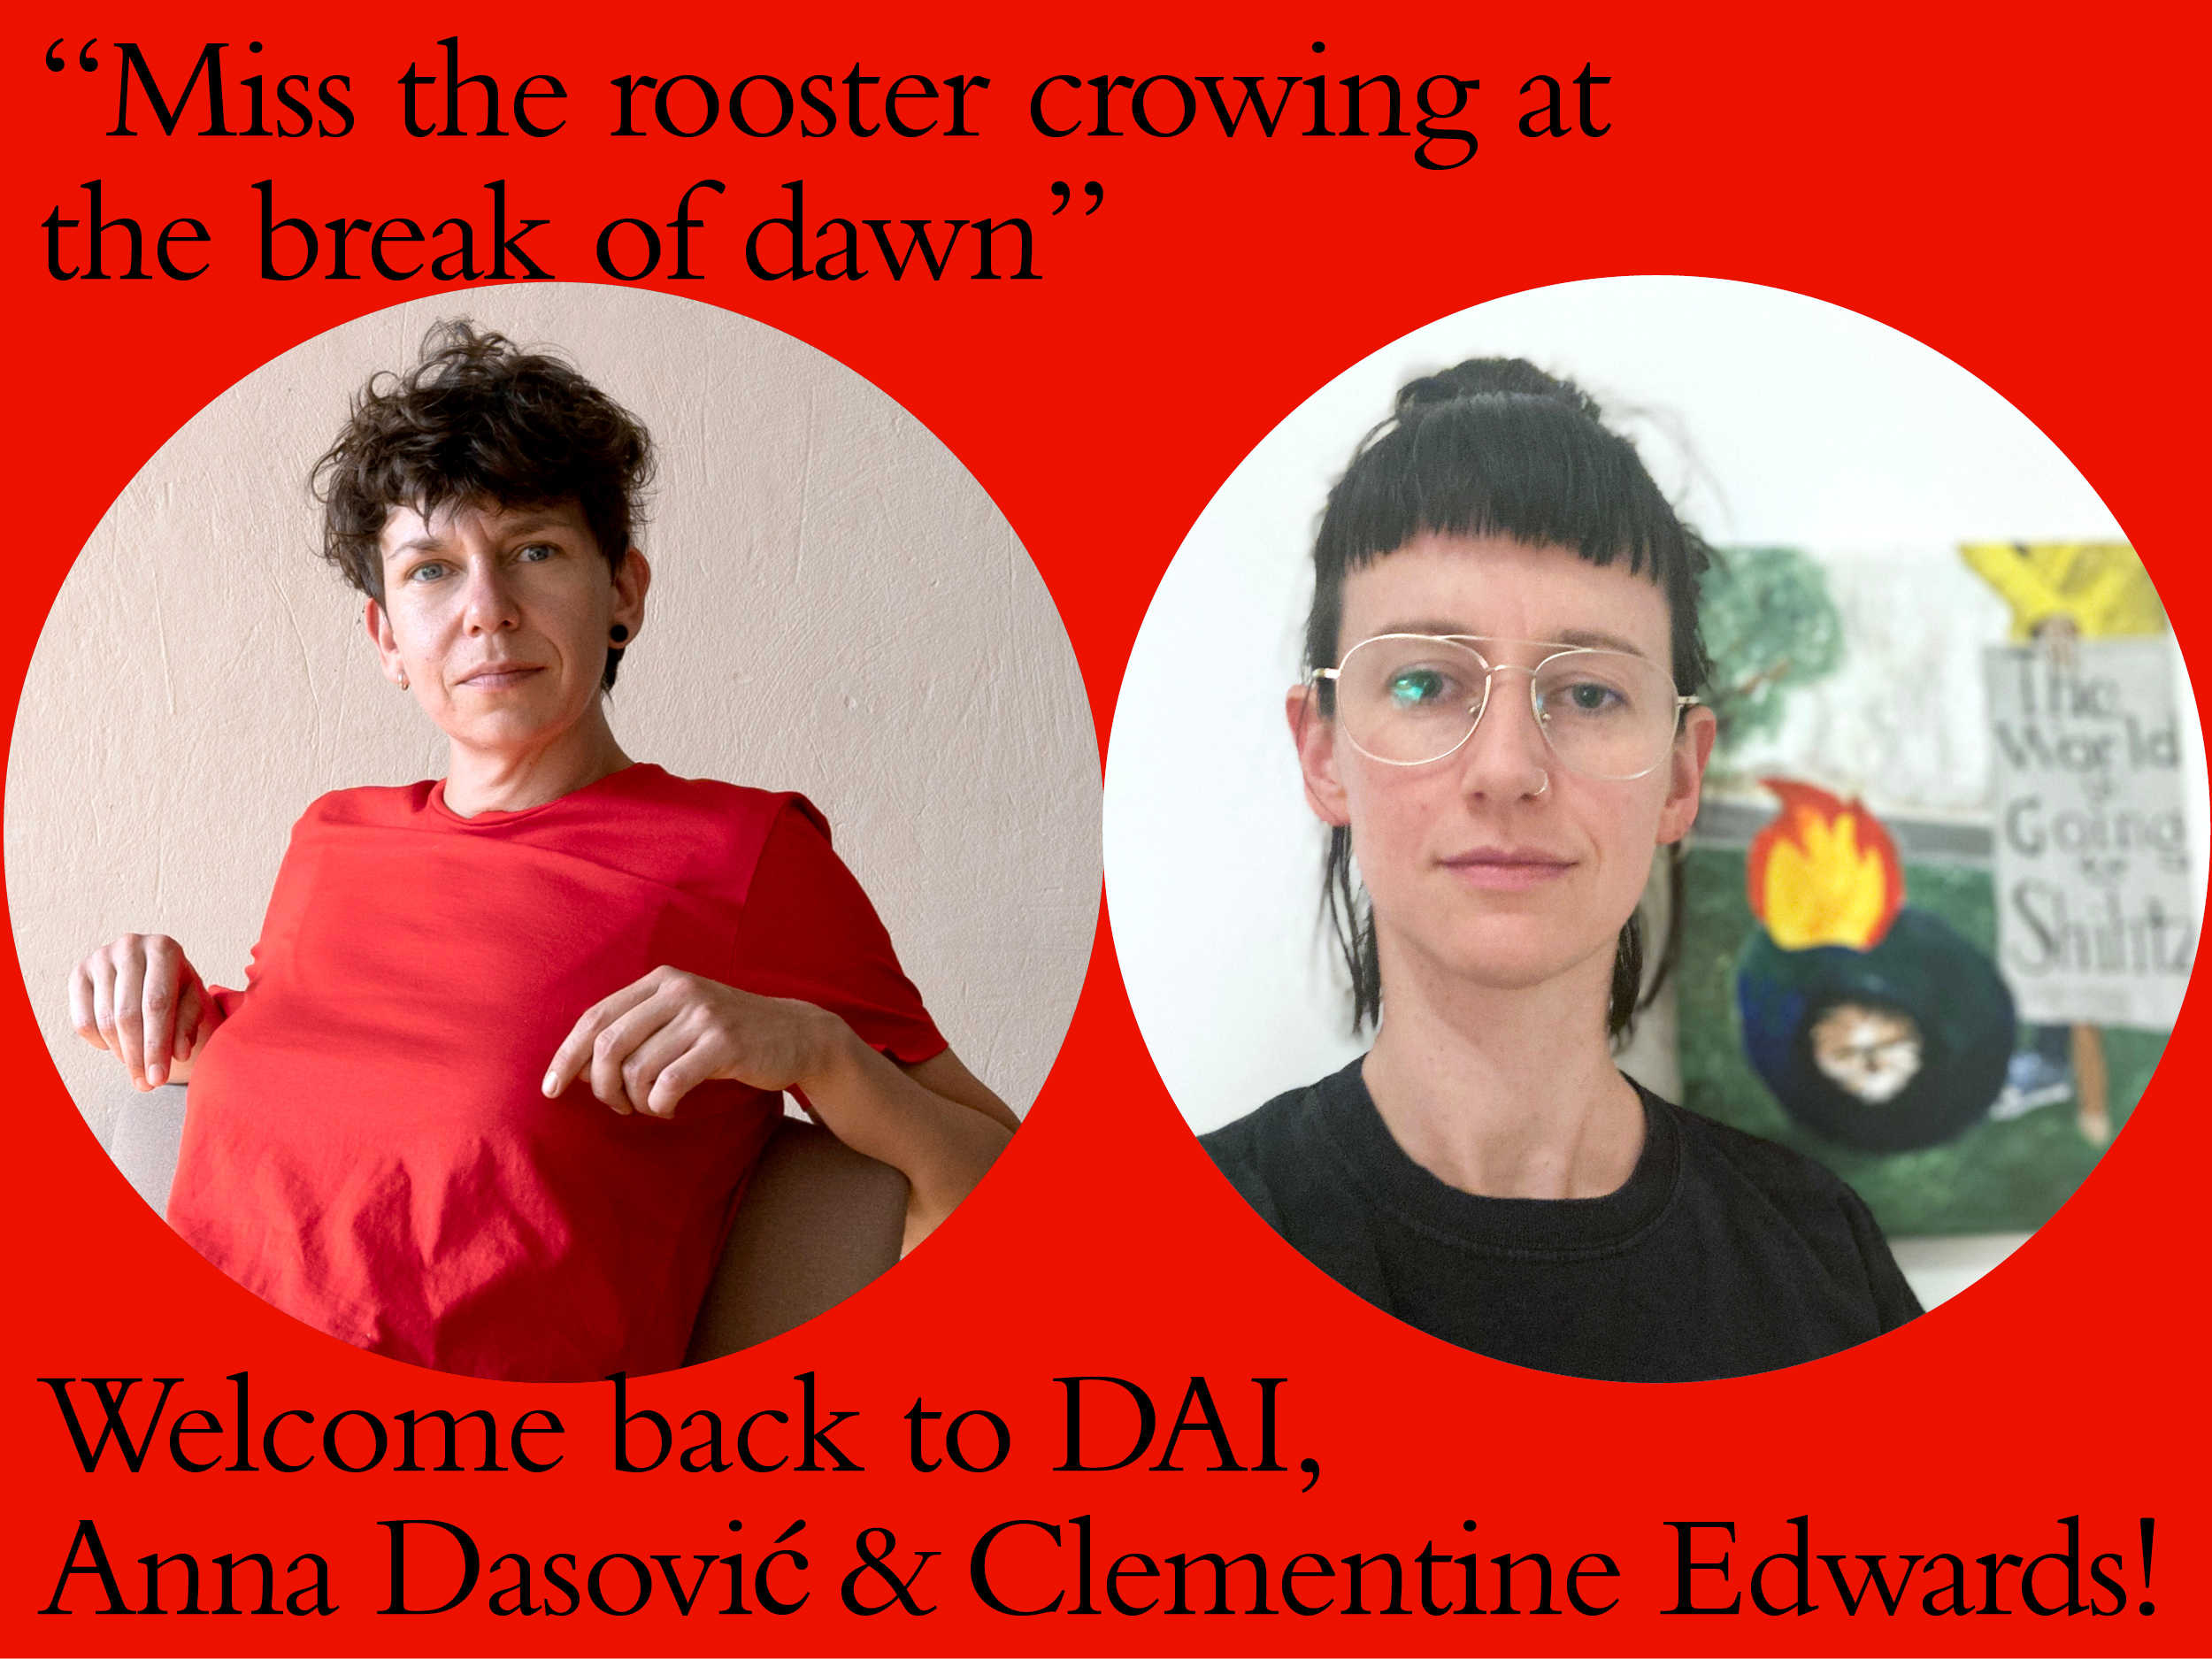 DAI welcomes back Anna Dasović & Clementine Edwards - member of our alumni embassy for Kitchen, 26th June.